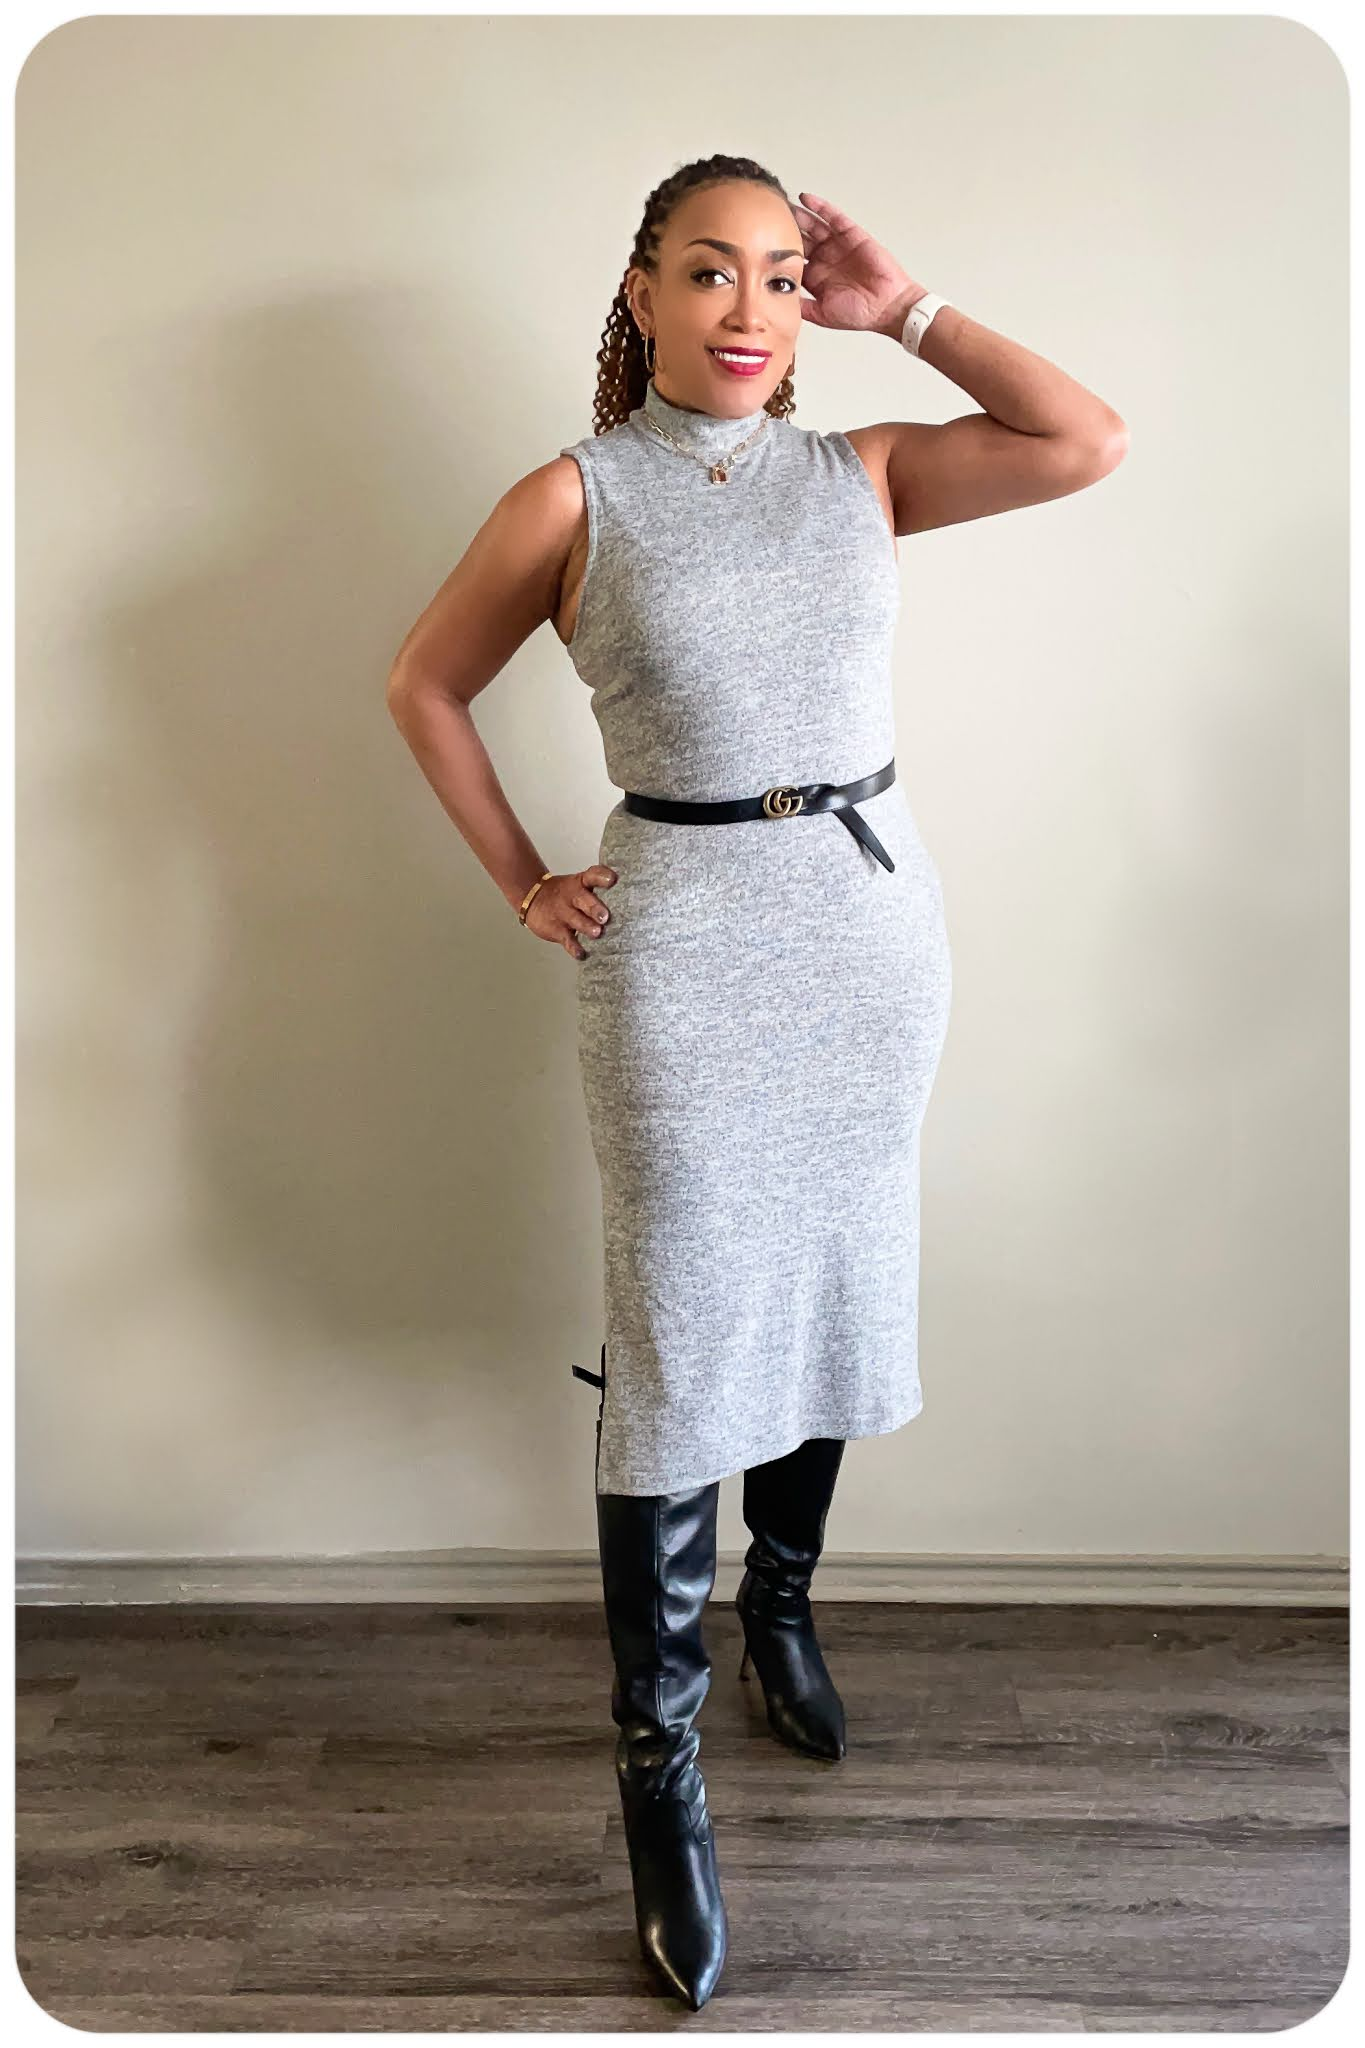 True Bias Nikko Dress - Erica Bunker DIY Style!